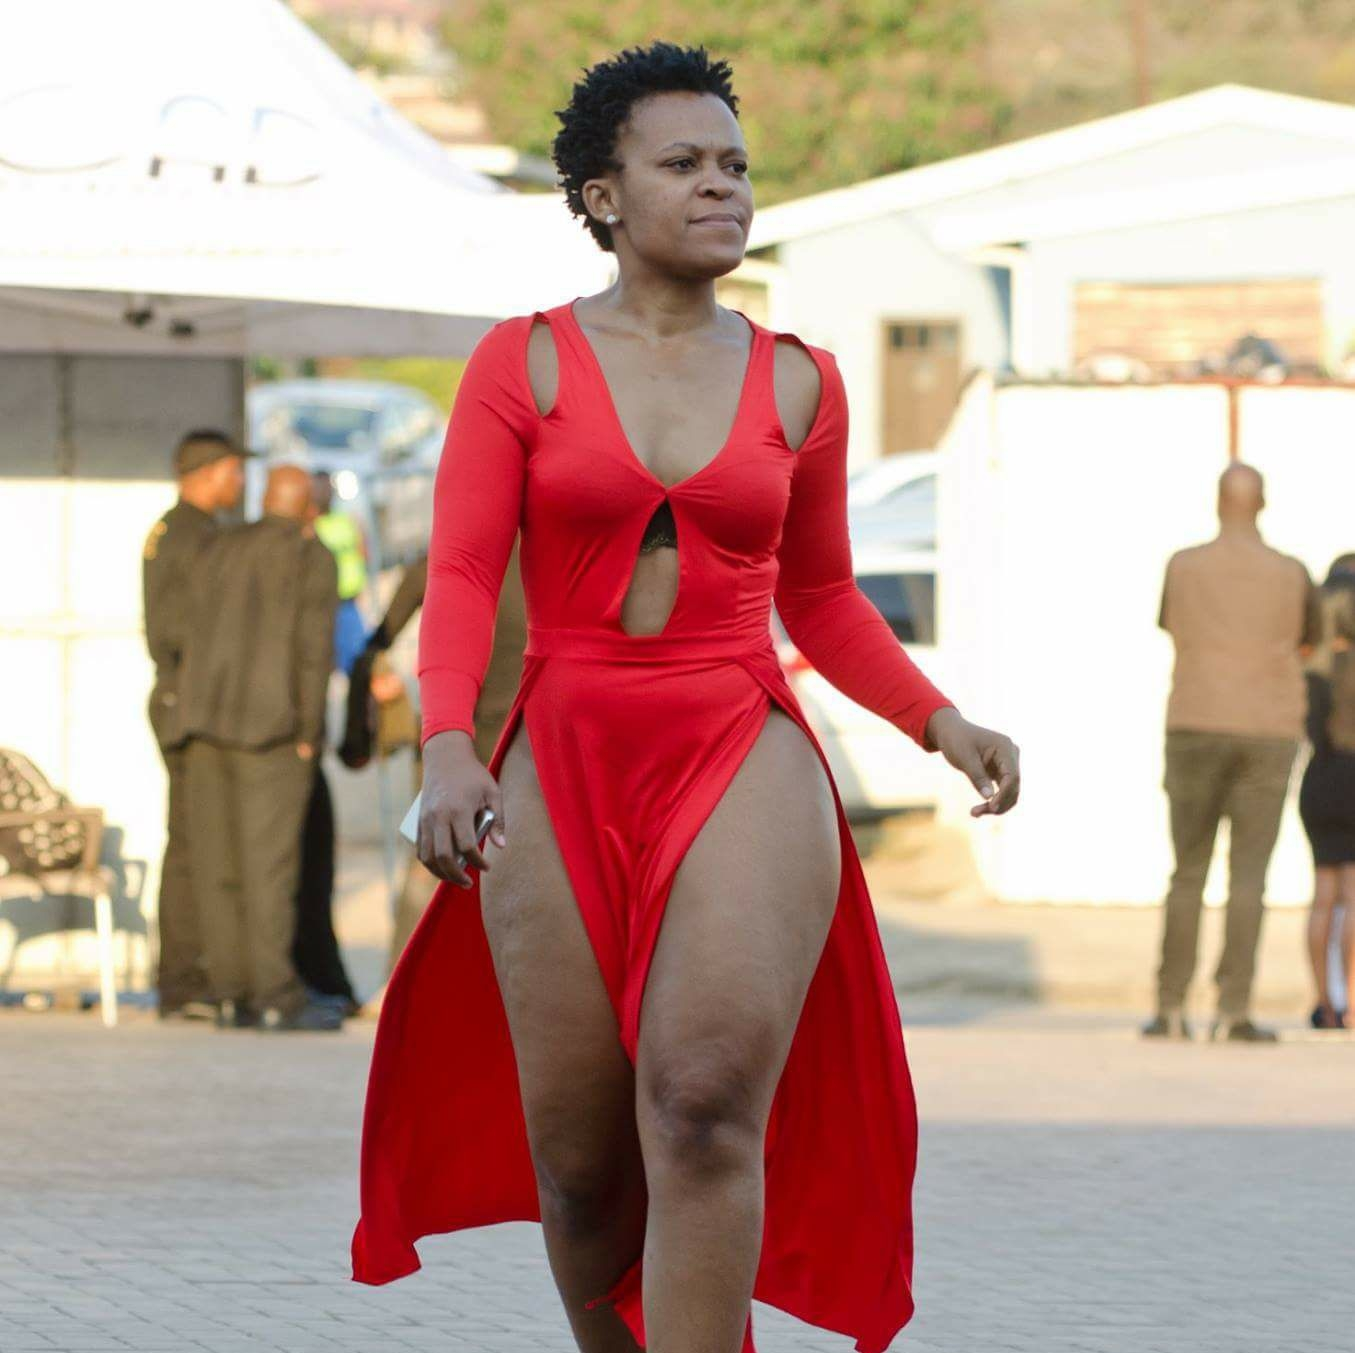 Zim men in for a treat as Zodwa Wabantu ban gets lifted